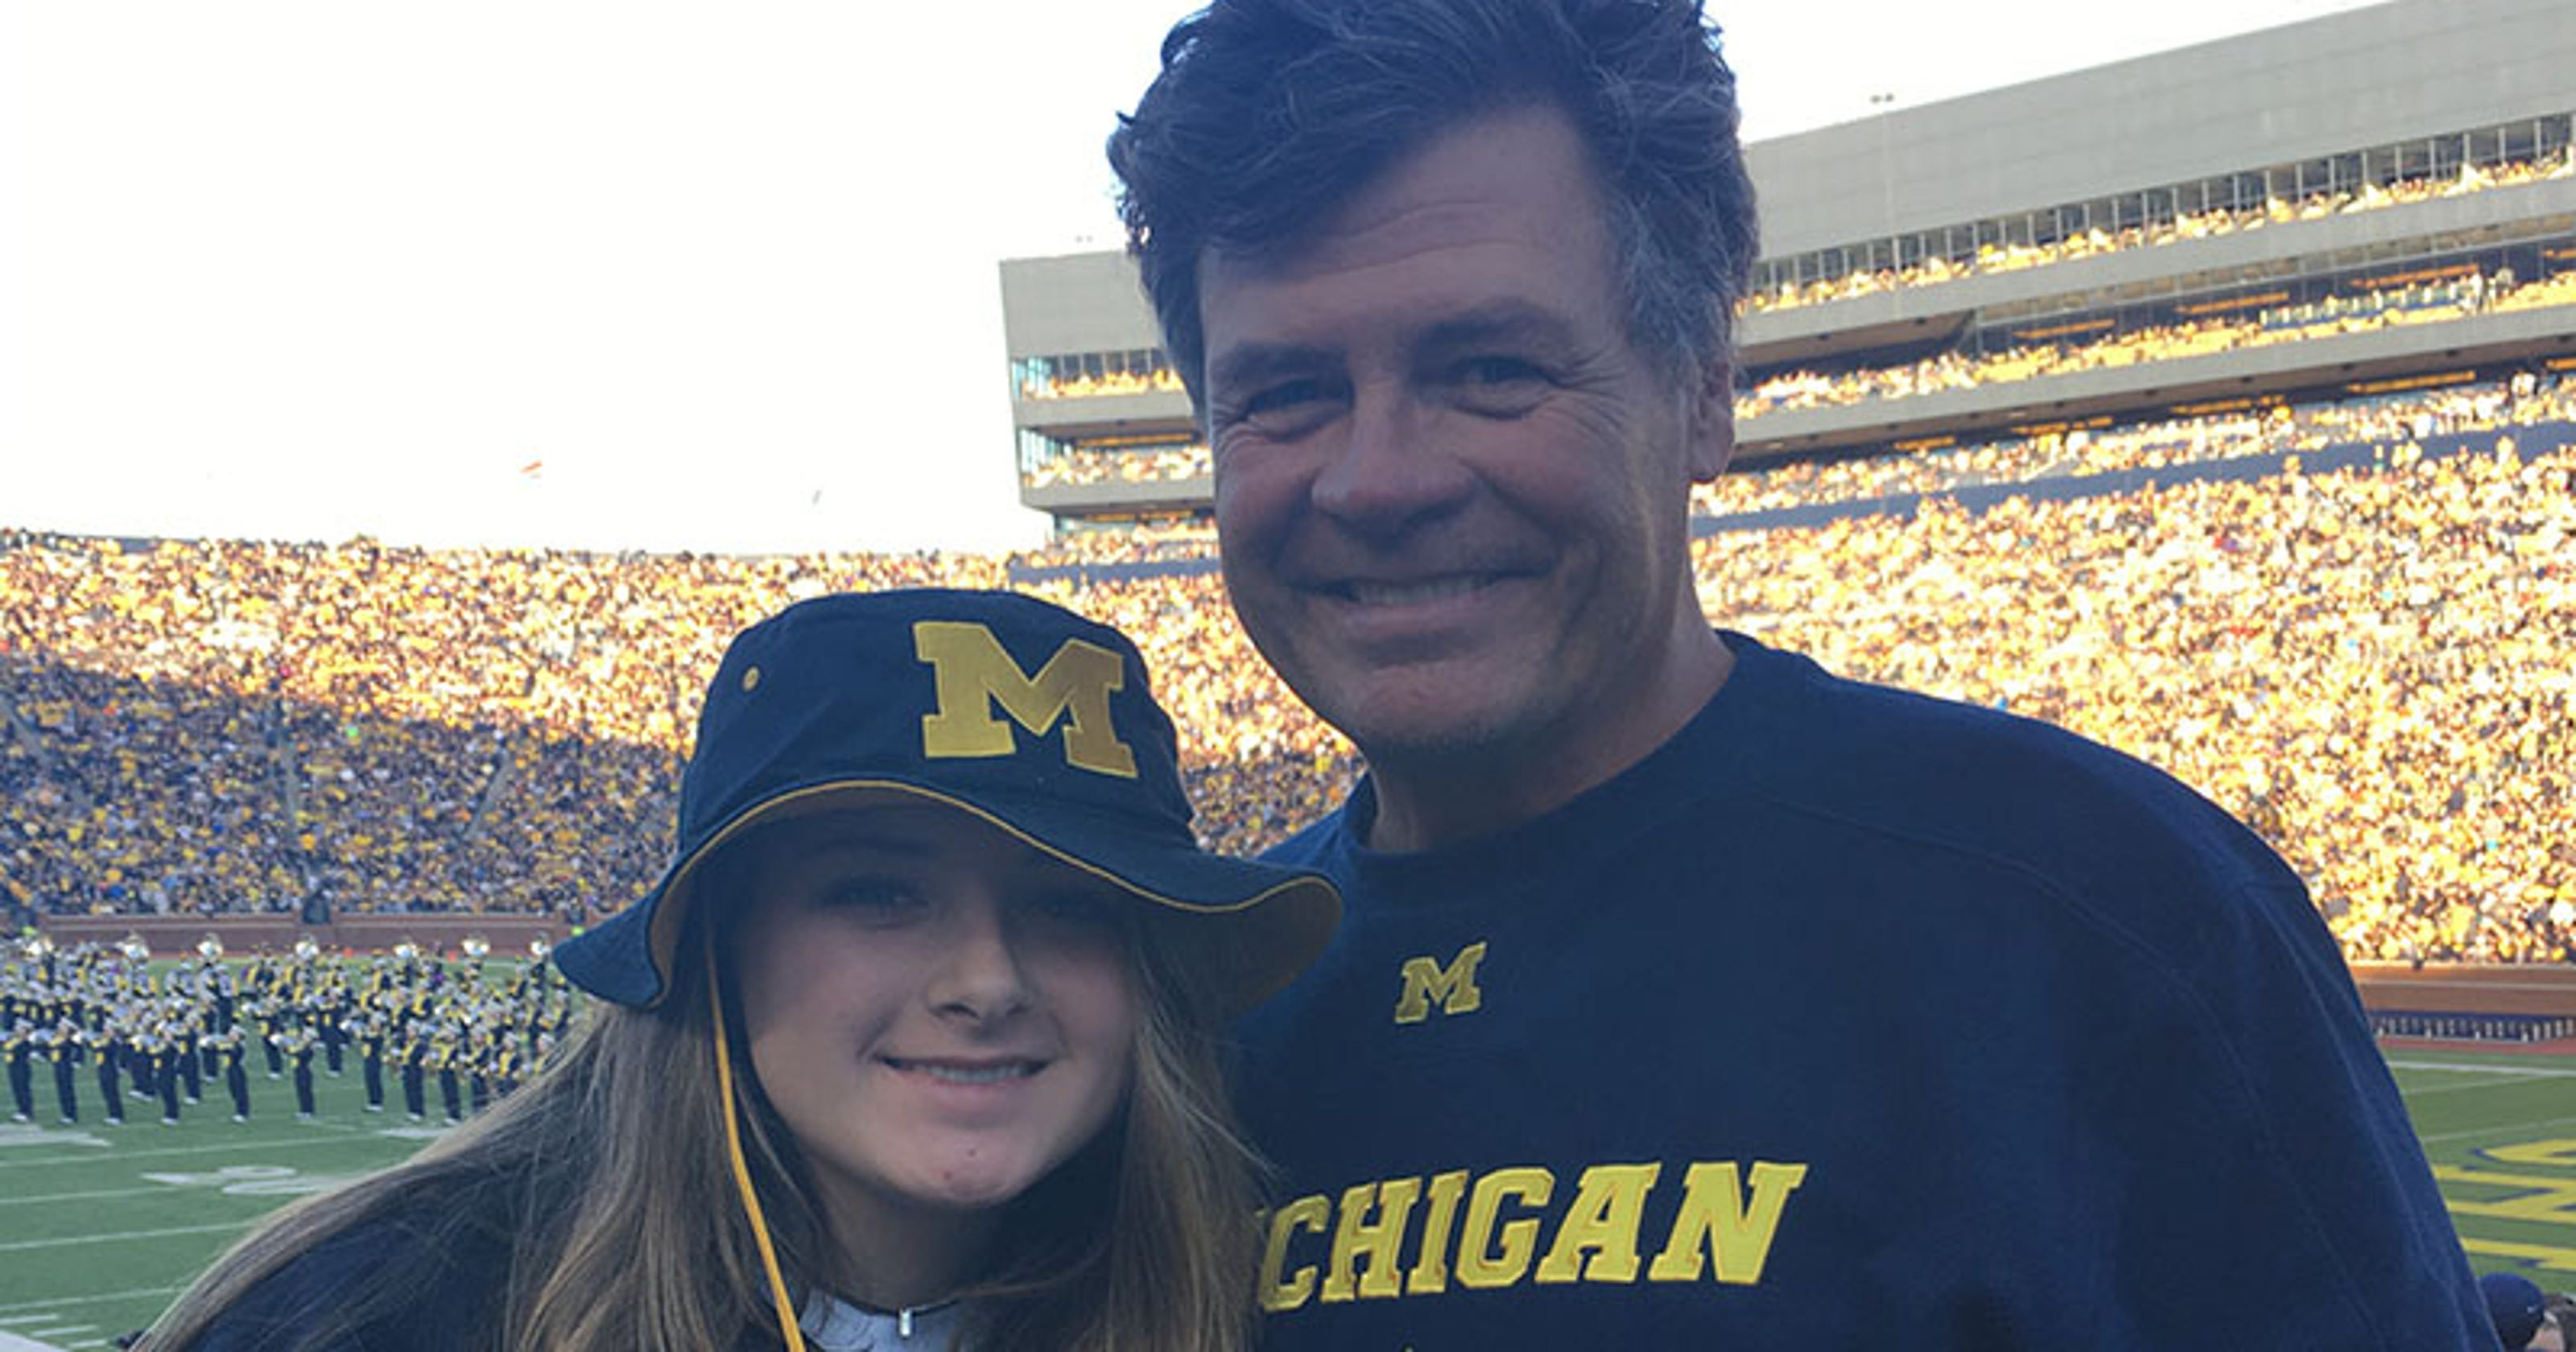 NASCAR star Michael Waltrip sees Michigan football game with